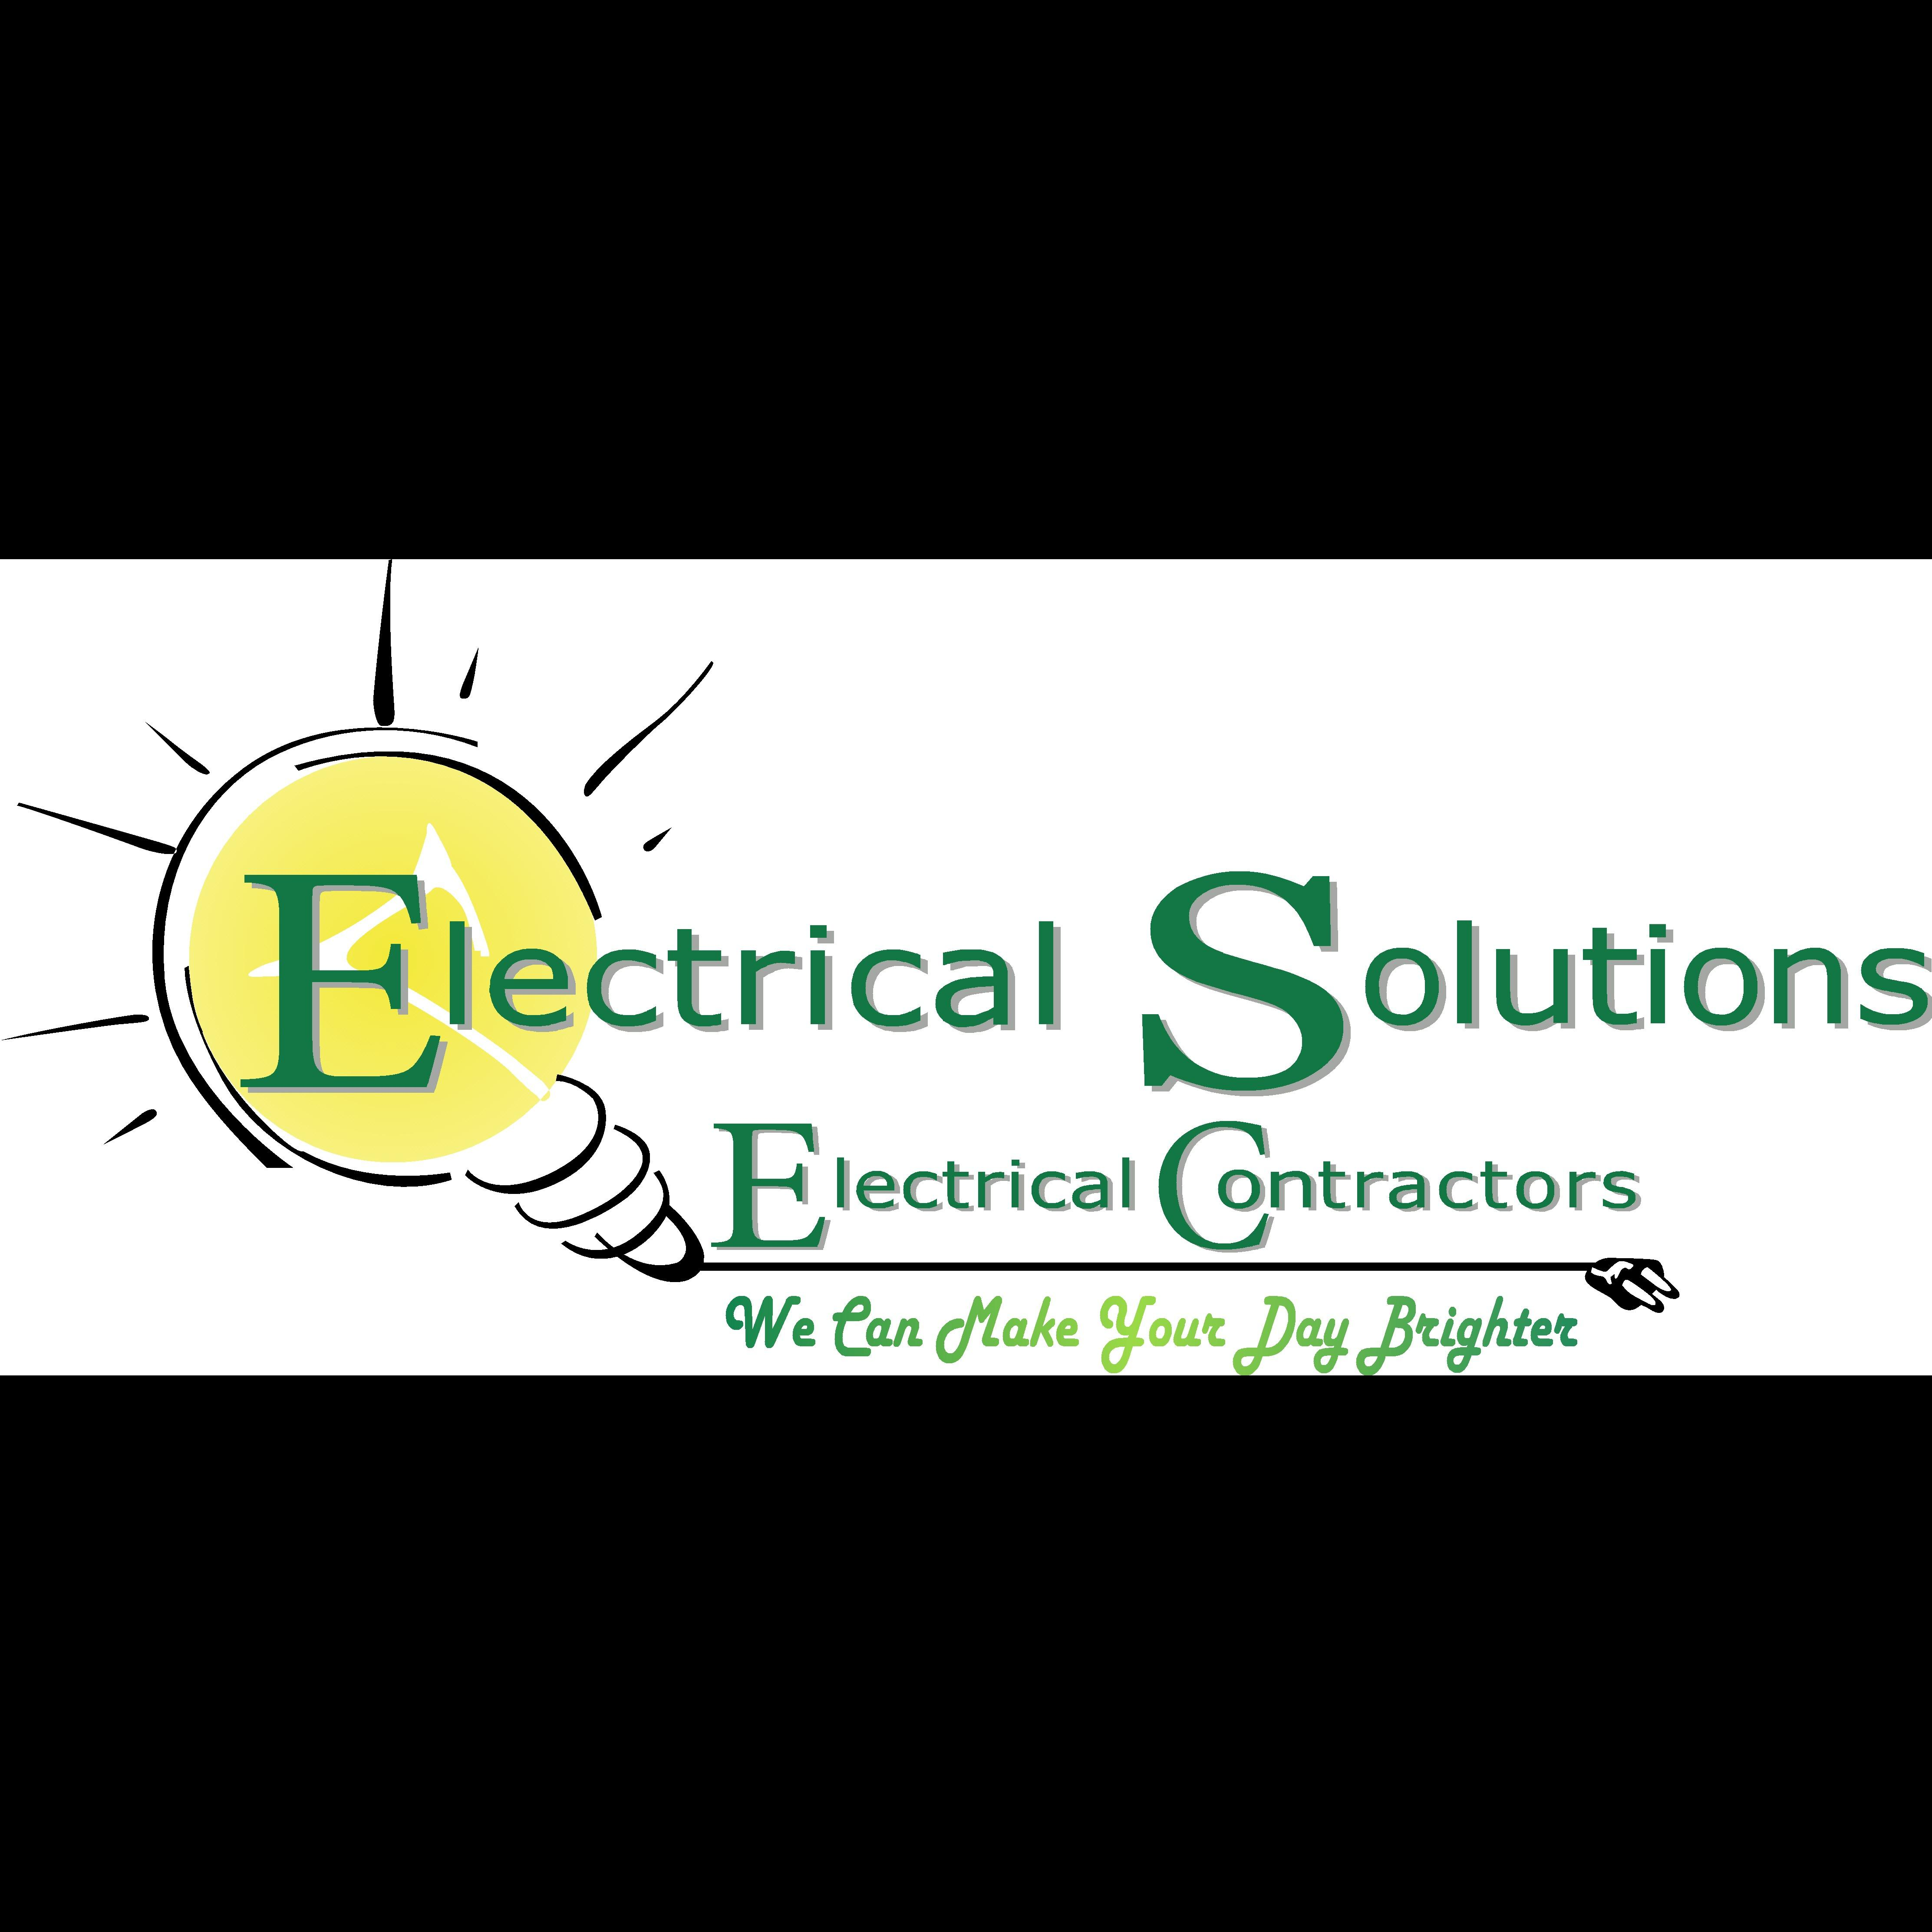 Electrical Solutions Inc